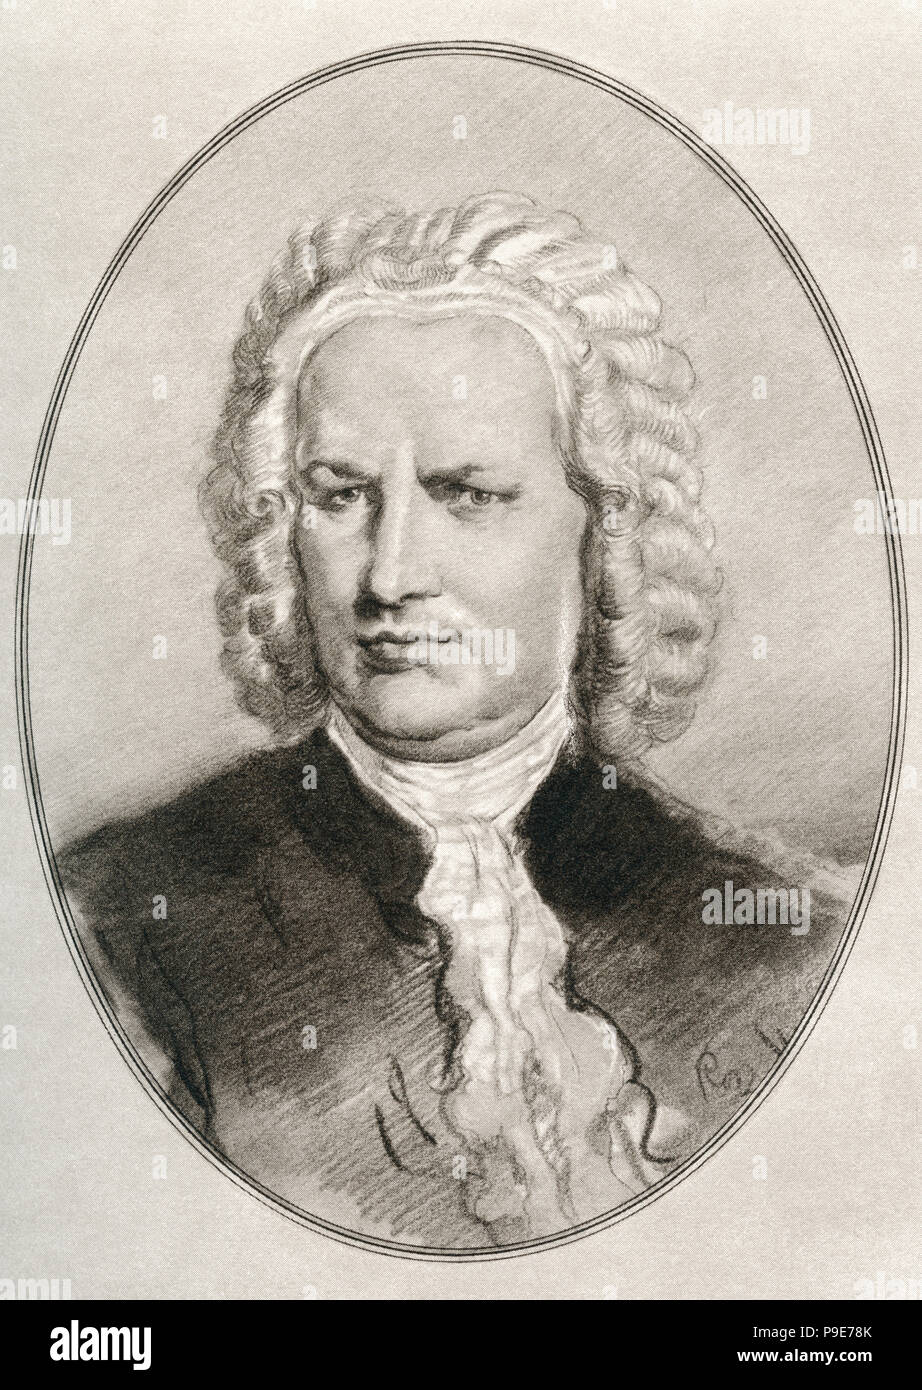 Johann Sebastian Bach, 1685 – 1750.  Composer and musician of the Baroque period.  Illustration by Gordon Ross, American artist and illustrator (1873-1946), from Living Biographies of Great Composers. - Stock Image